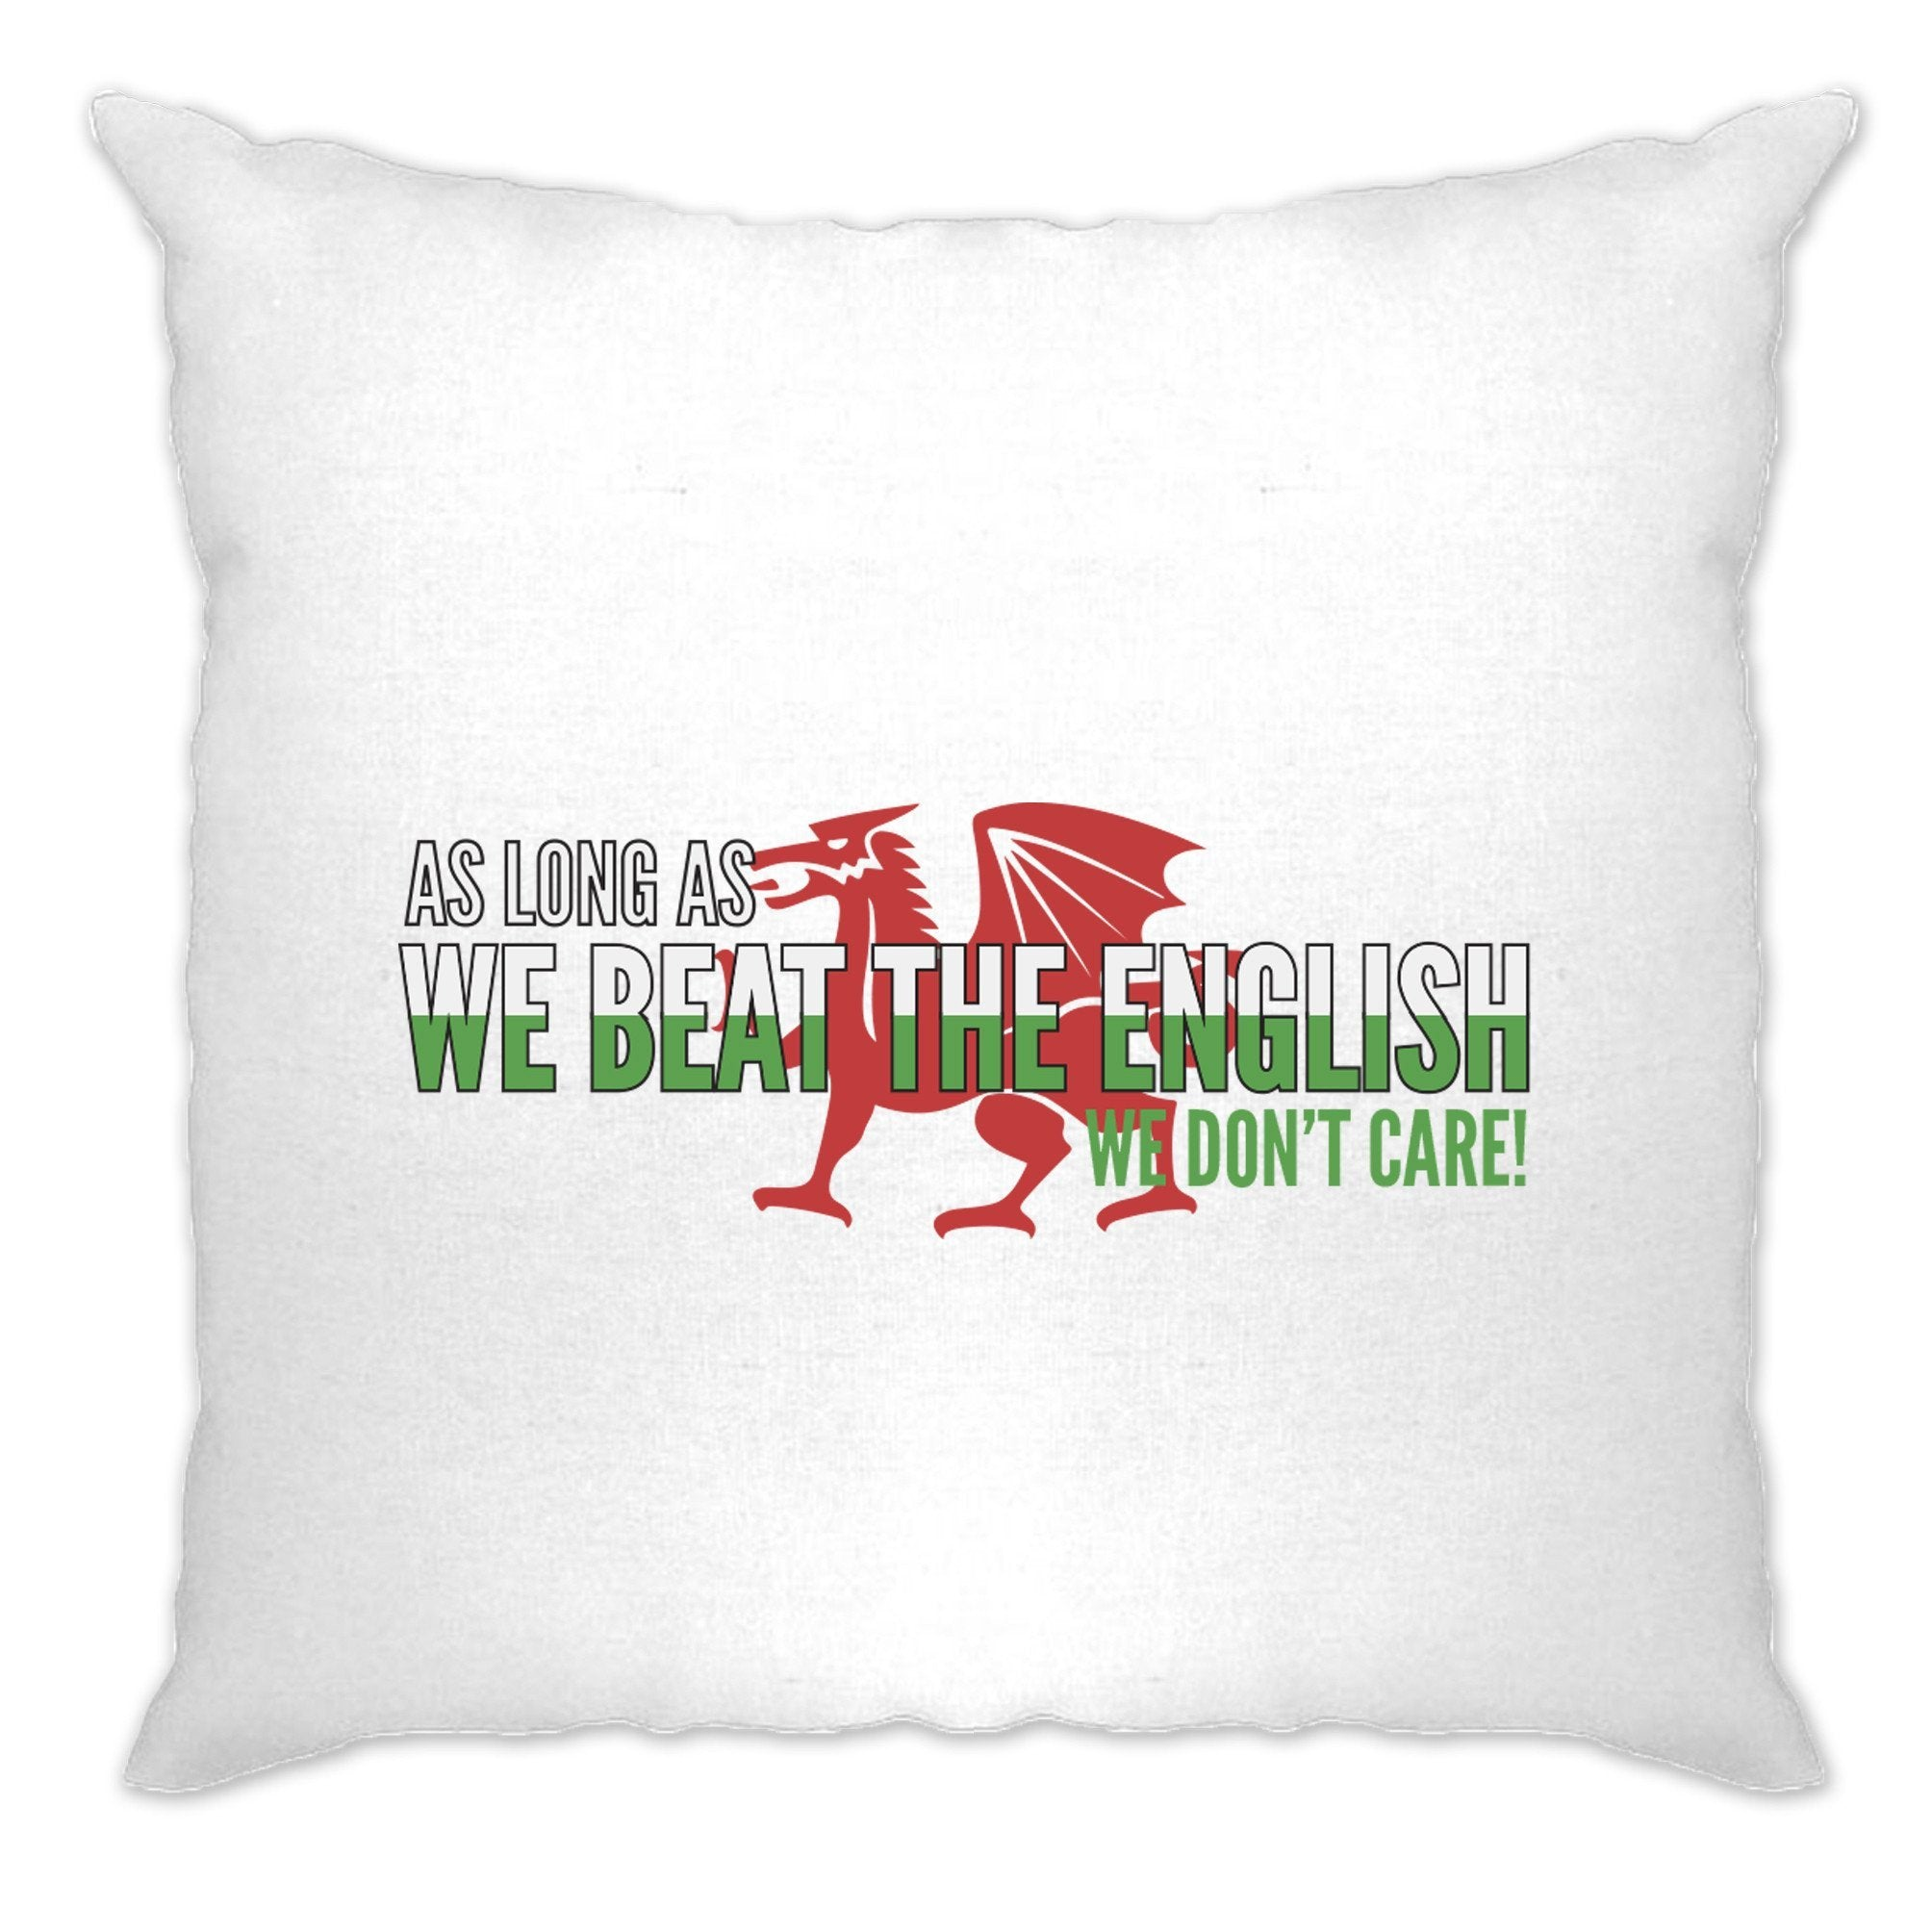 Novelty Welsh Cushion Cover As Long As We Beat The English